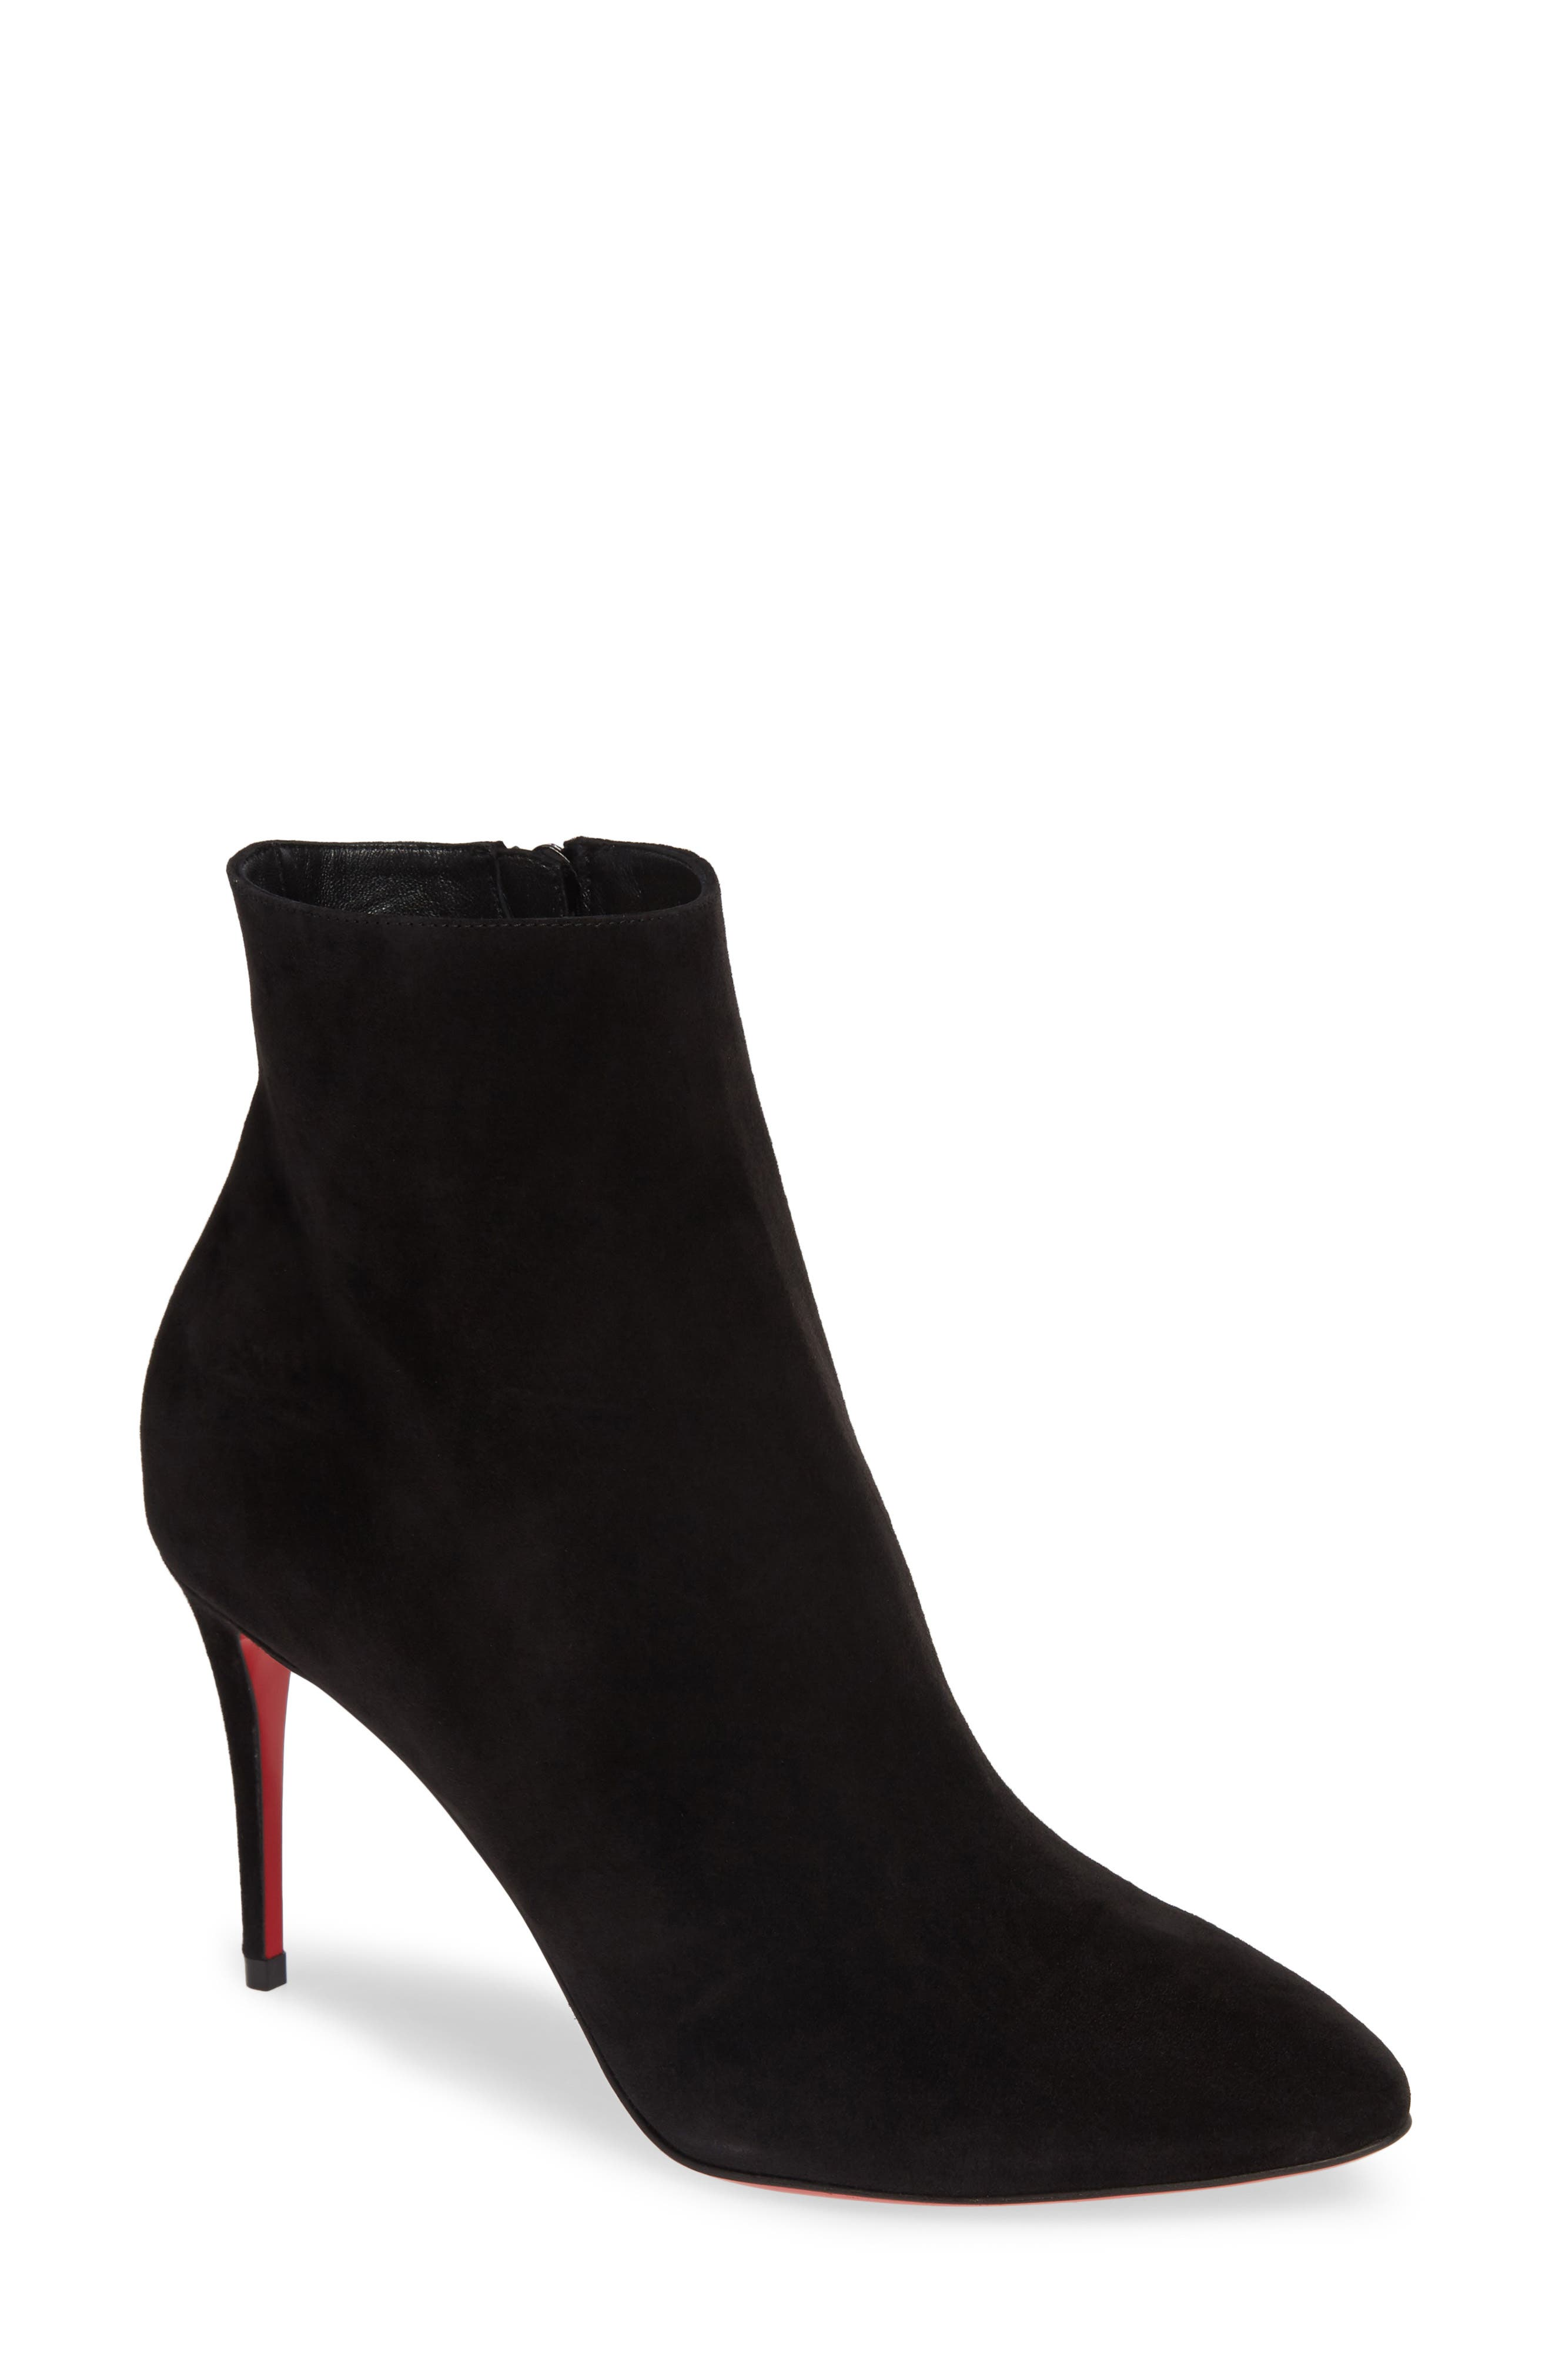 Christian Louboutin Eloise Pointy Toe Bootie, Brown